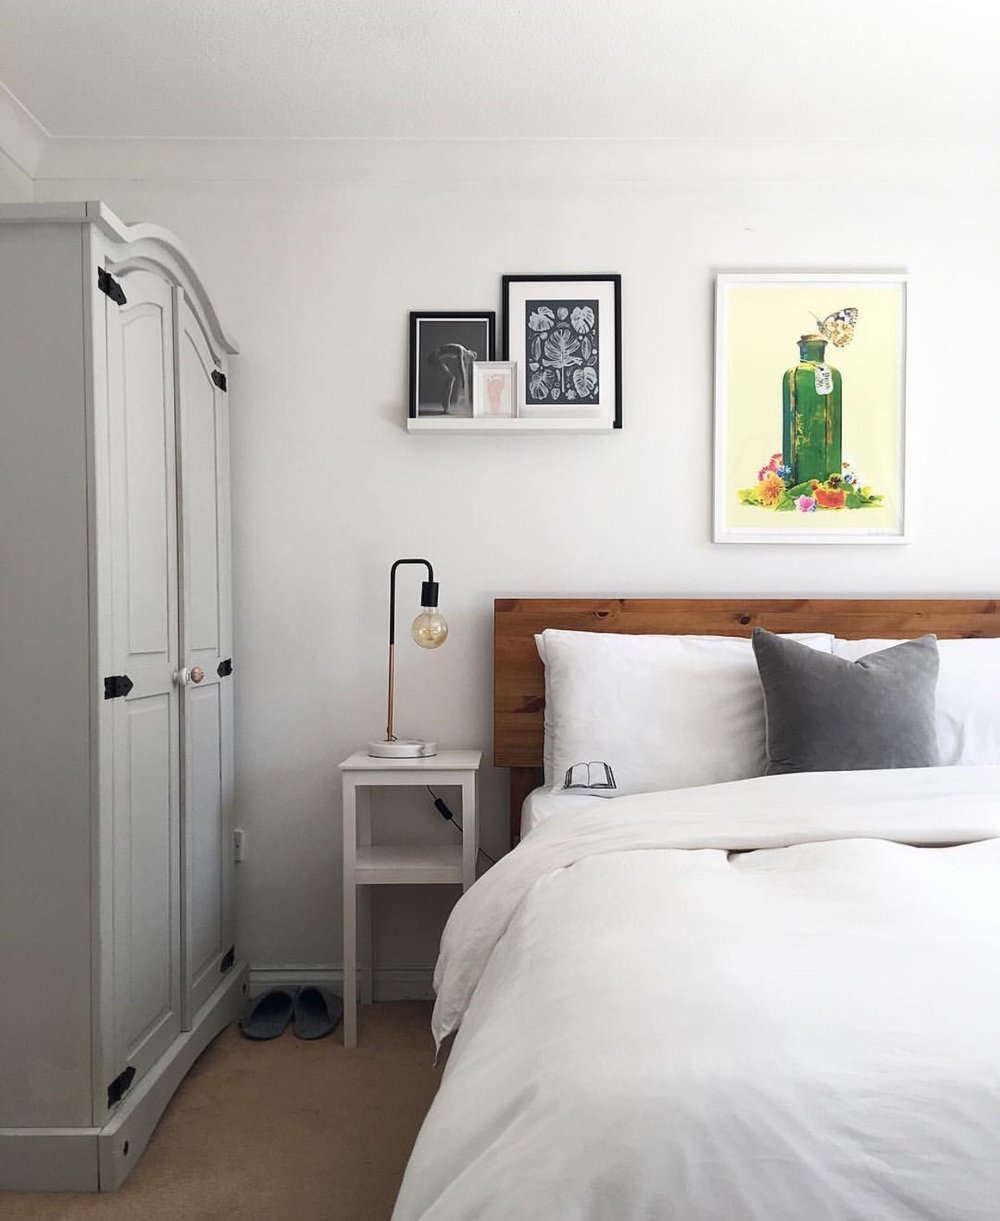 My bedroom details, Bed: Warren evans, Bedding: The White Company, Alice in Wonderland print: Print Club London